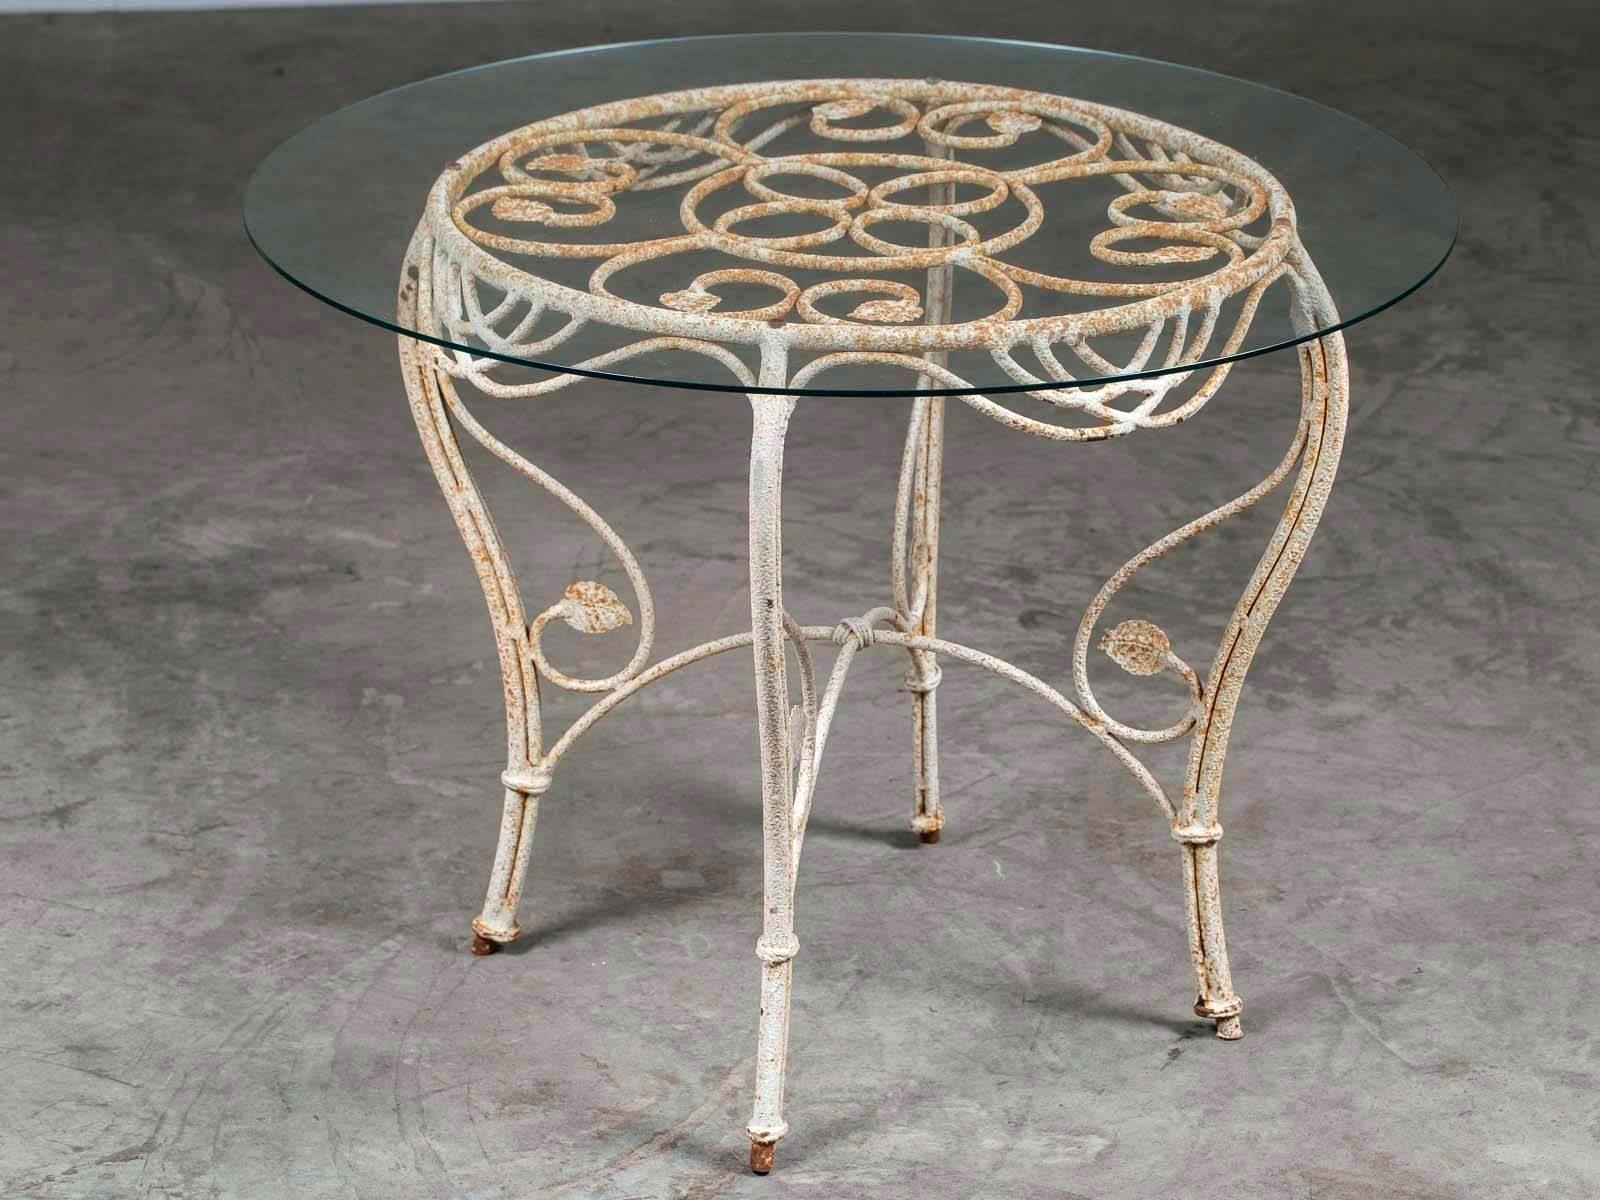 glass top garden tables table shattered round square outdoor side vintage french painted iron base circa with kitchen astonishing master arts and full size wide bedside cabinets